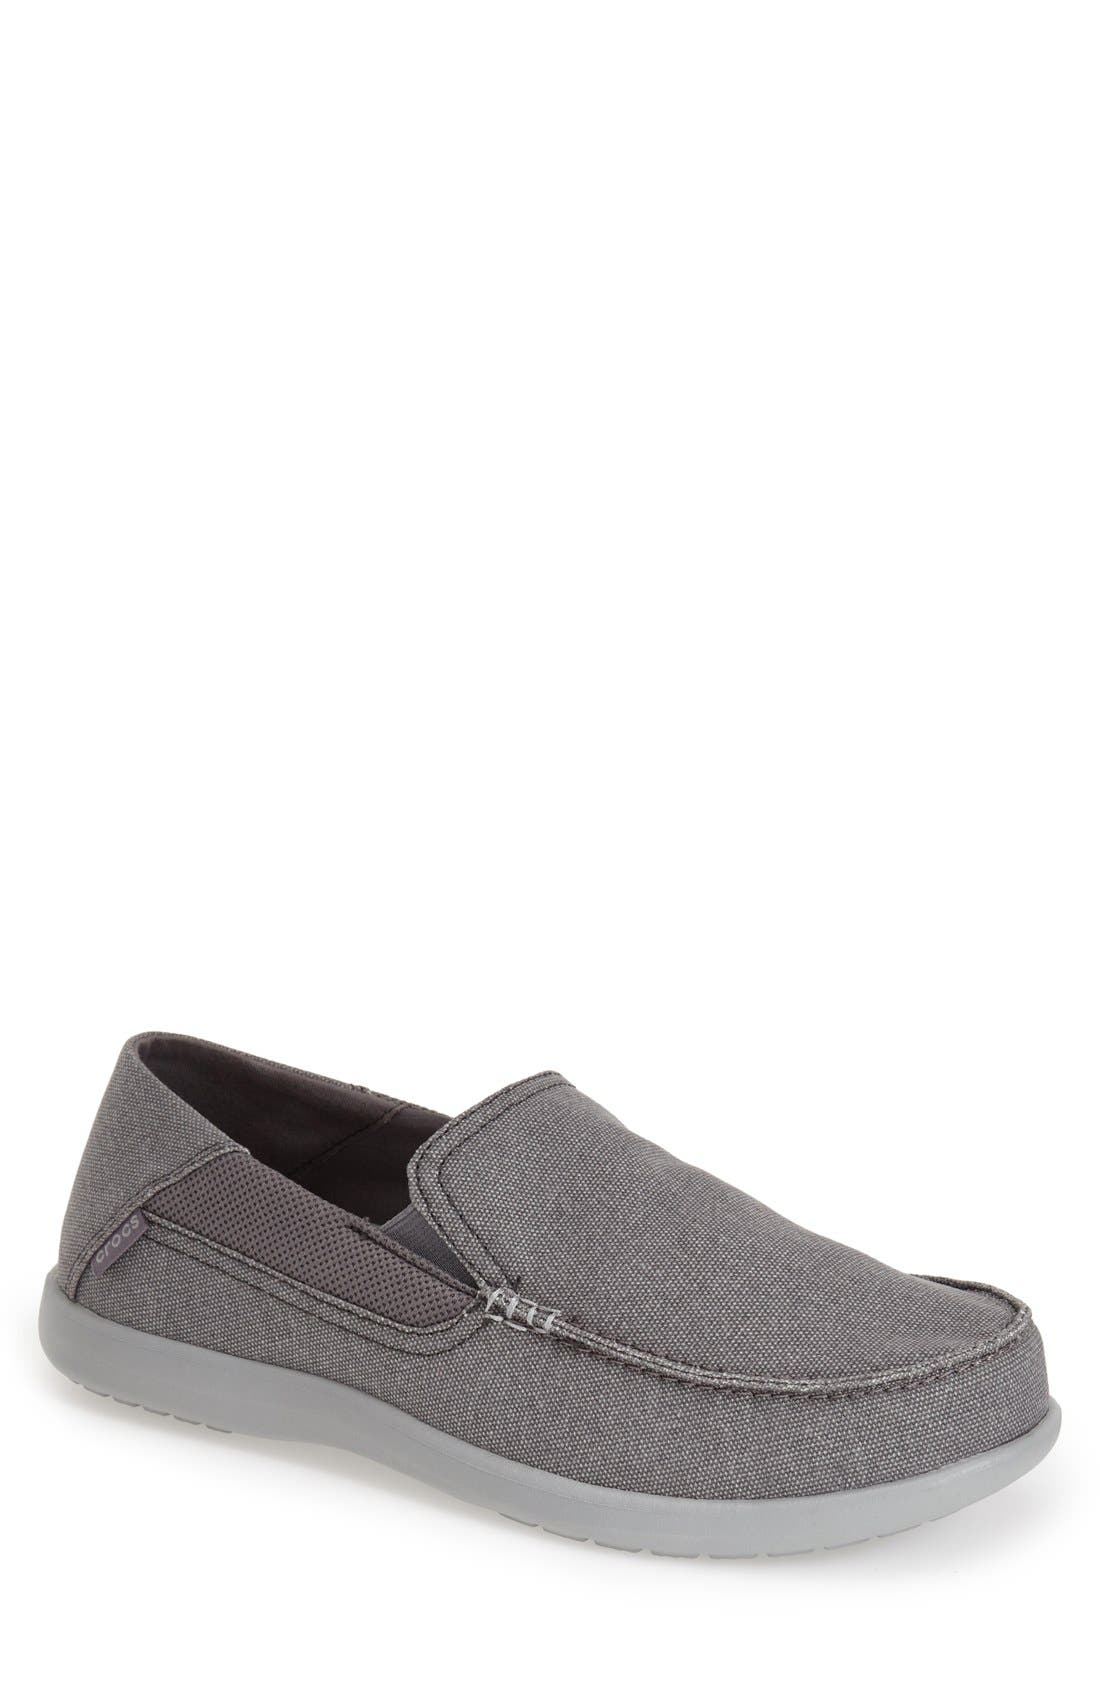 CROCS™ 'Santa Cruz 2 Luxe' Canvas Slip-On Loafer